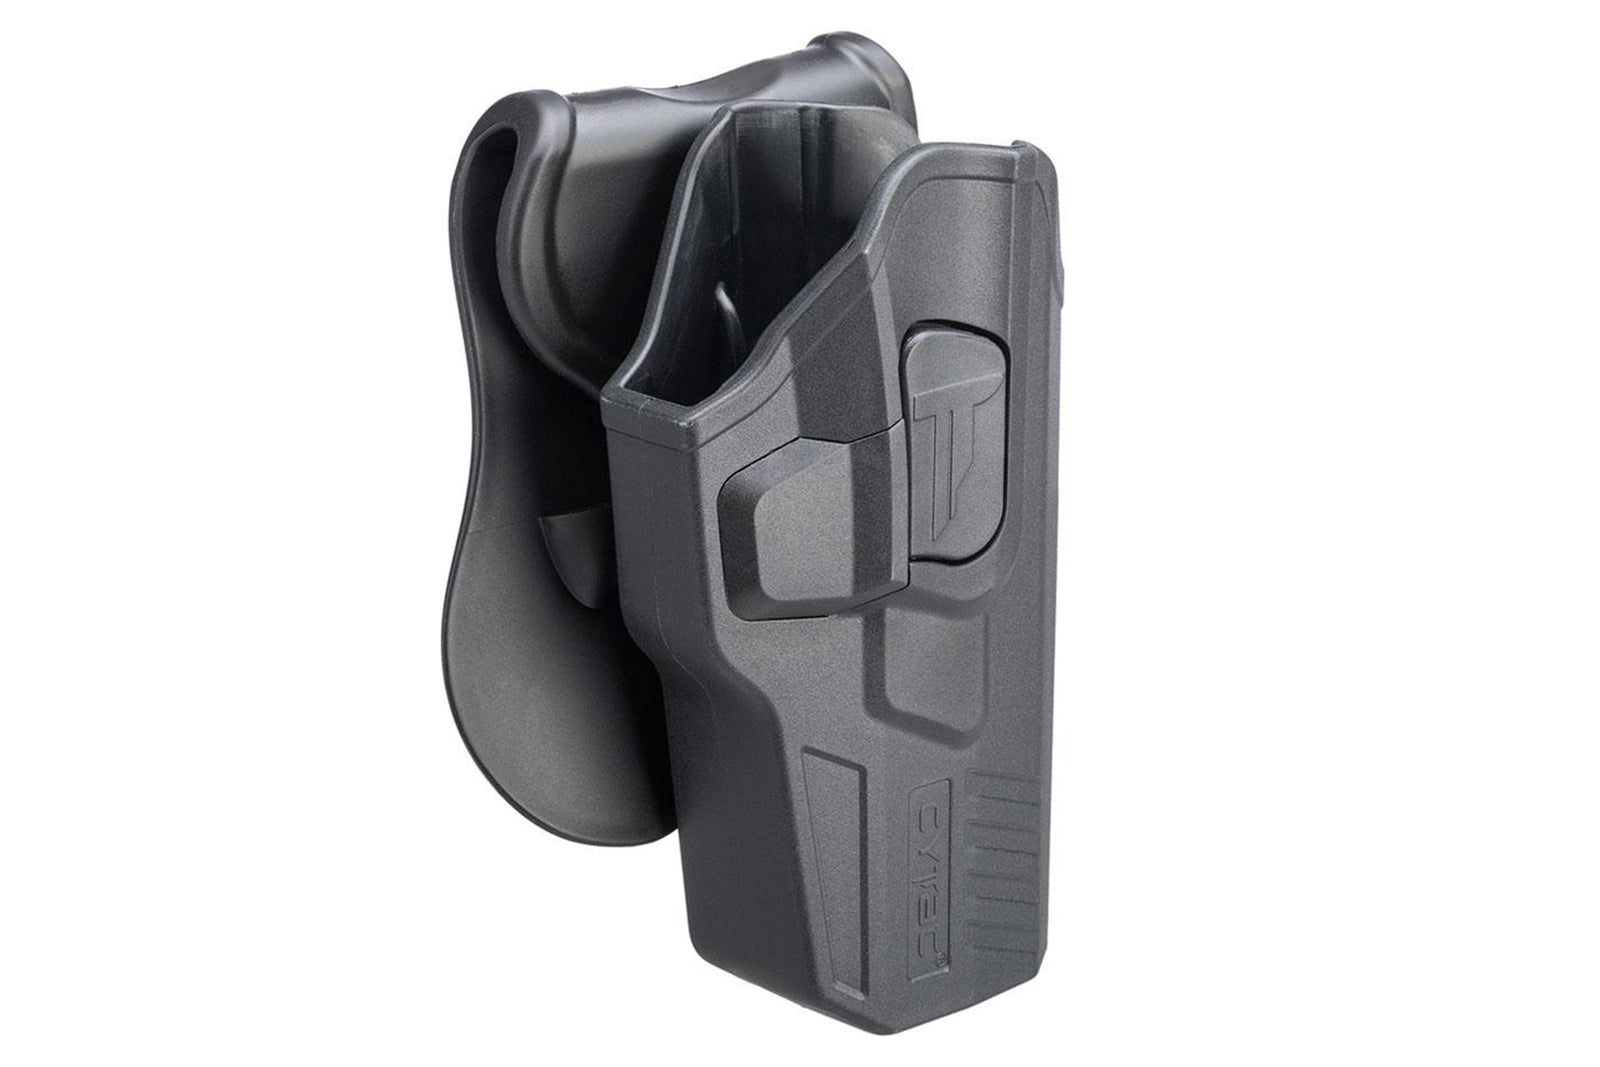 Matrix G3 Hardshell Adjustable Holster for GLOCK G17 Series Pistols